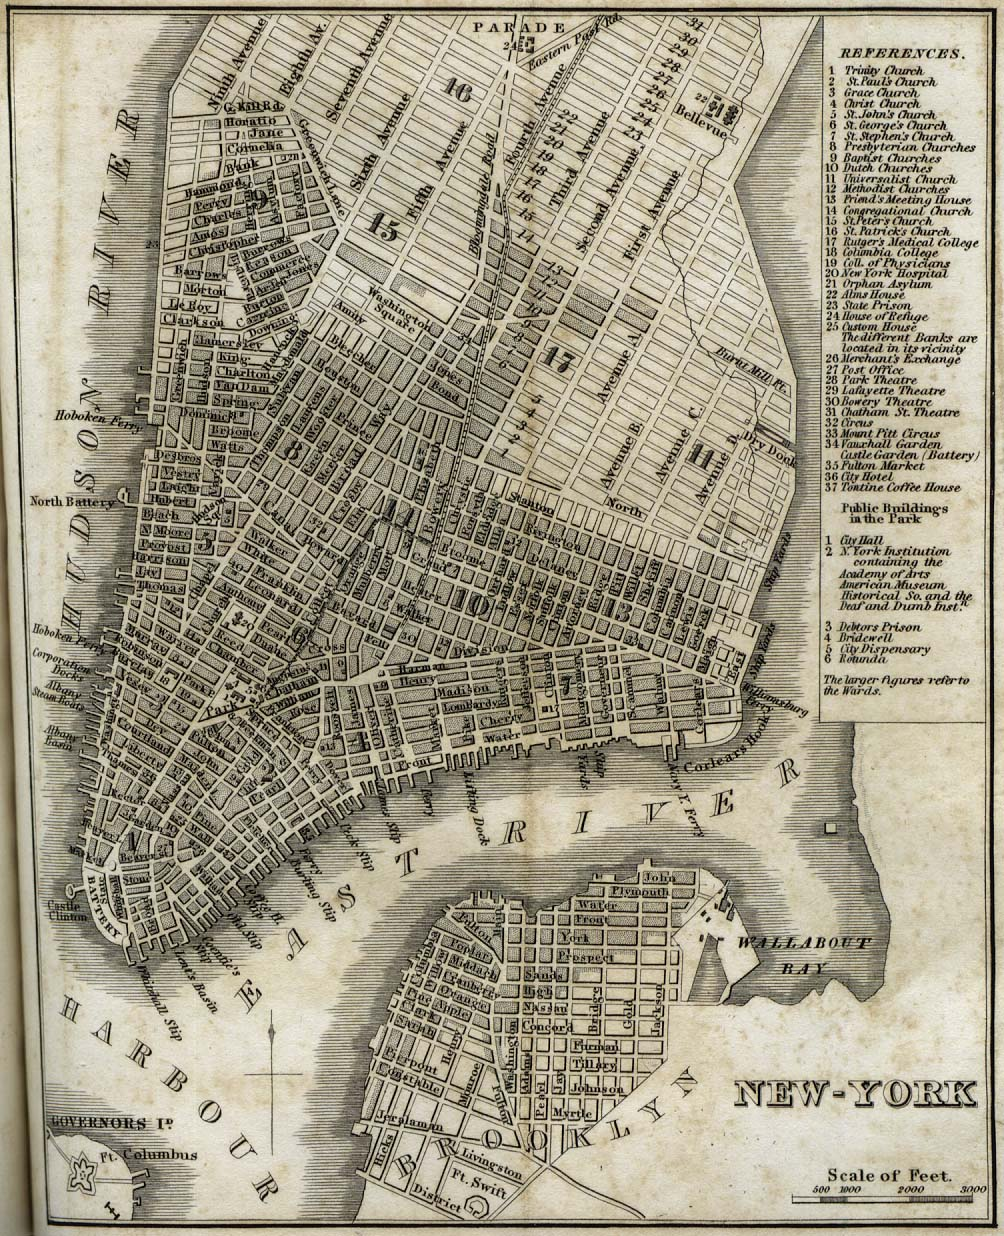 https://www.lib.utexas.edu/maps/historical/new_york_1842.jpg